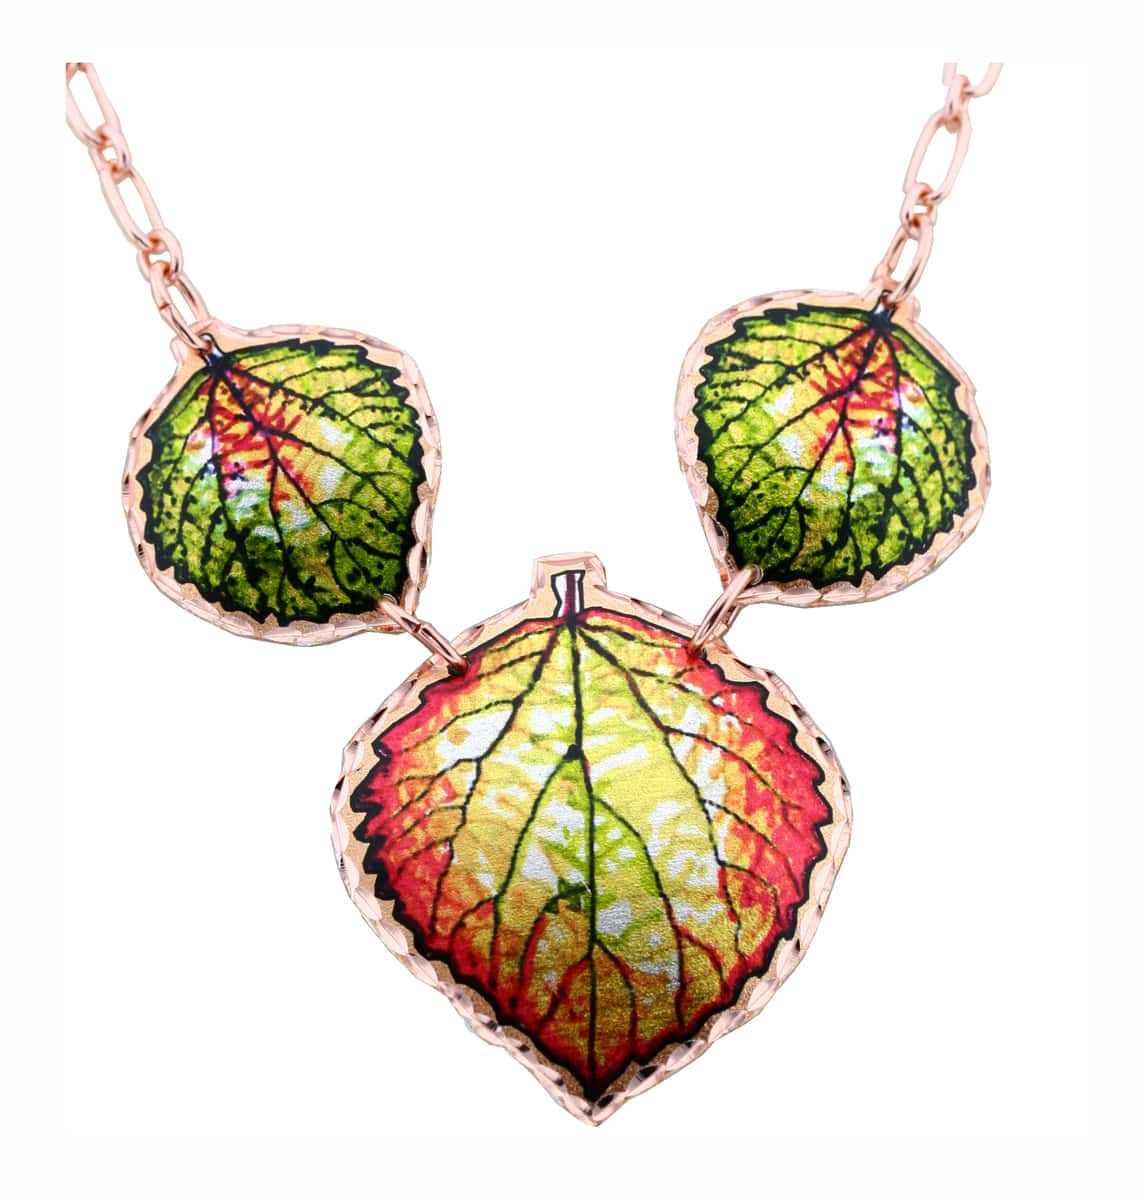 Colorful Aspen Leaves Necklaces Handmade from Copper